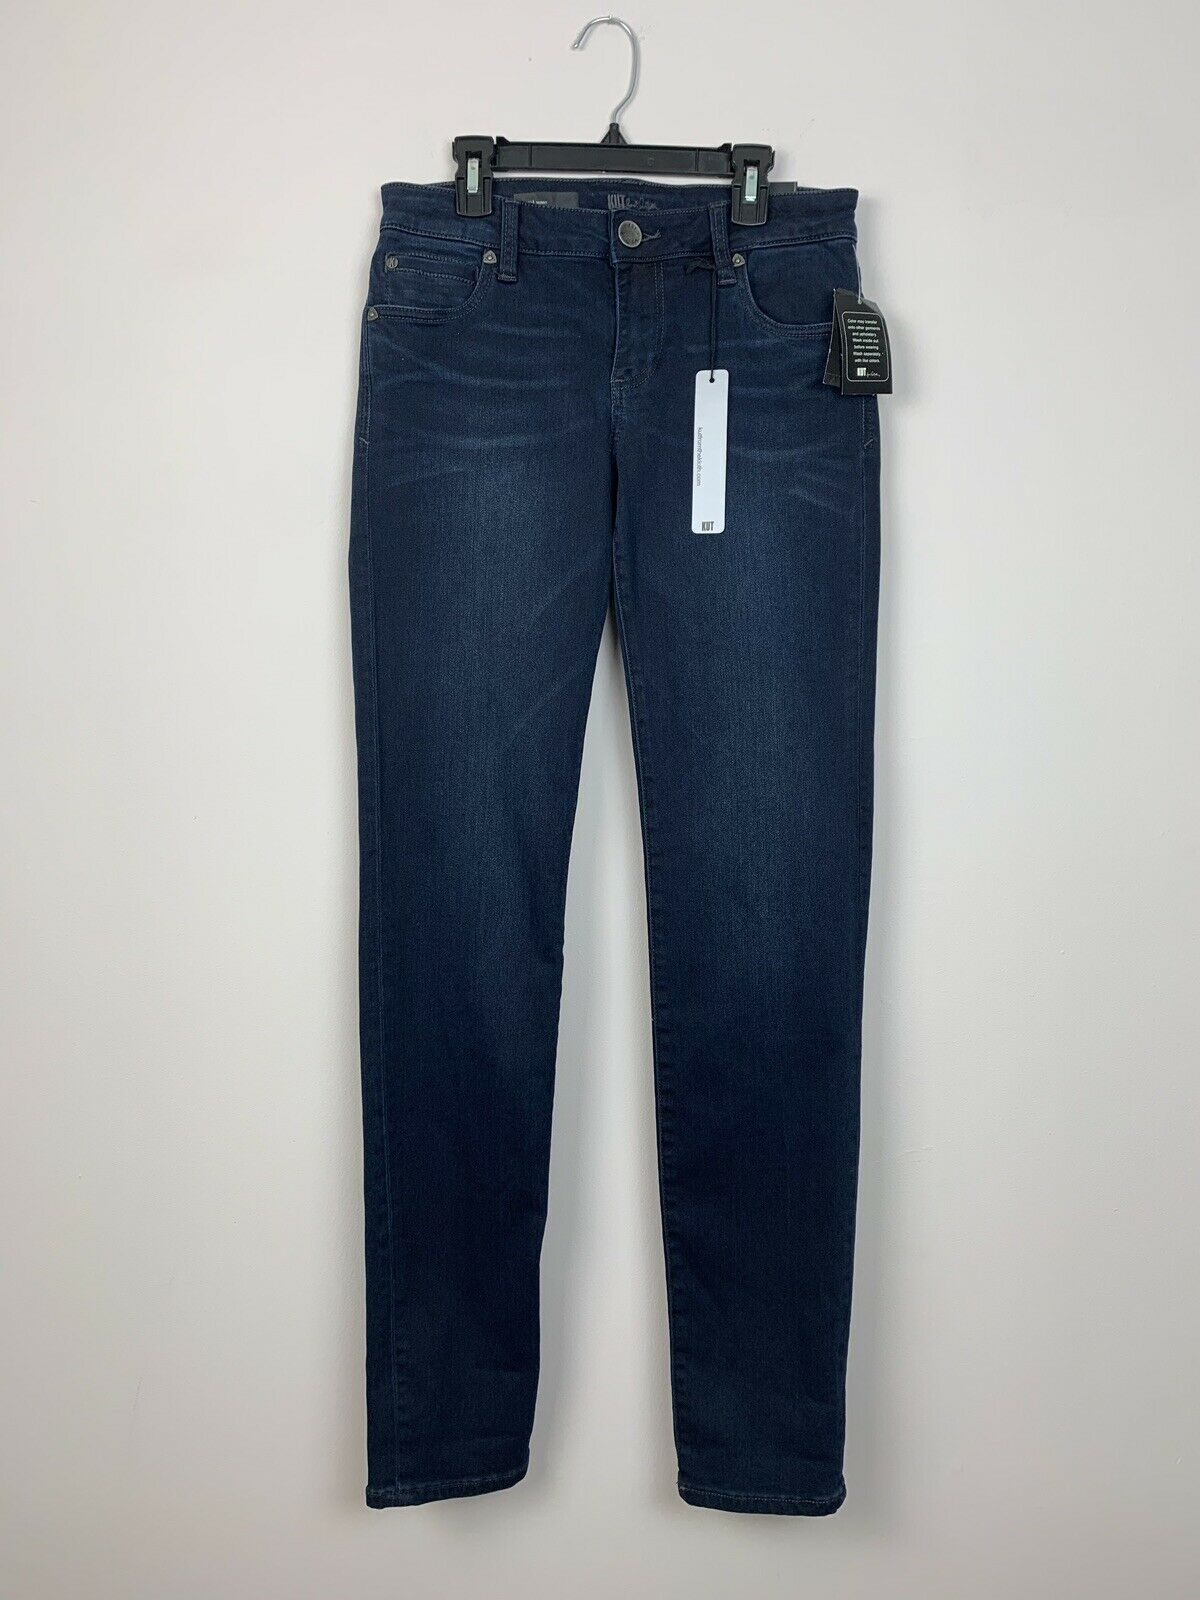 NWT Womens Kut From The Kloth Diana Skinny Beatitude bluee Jean Pants, Size 4 S